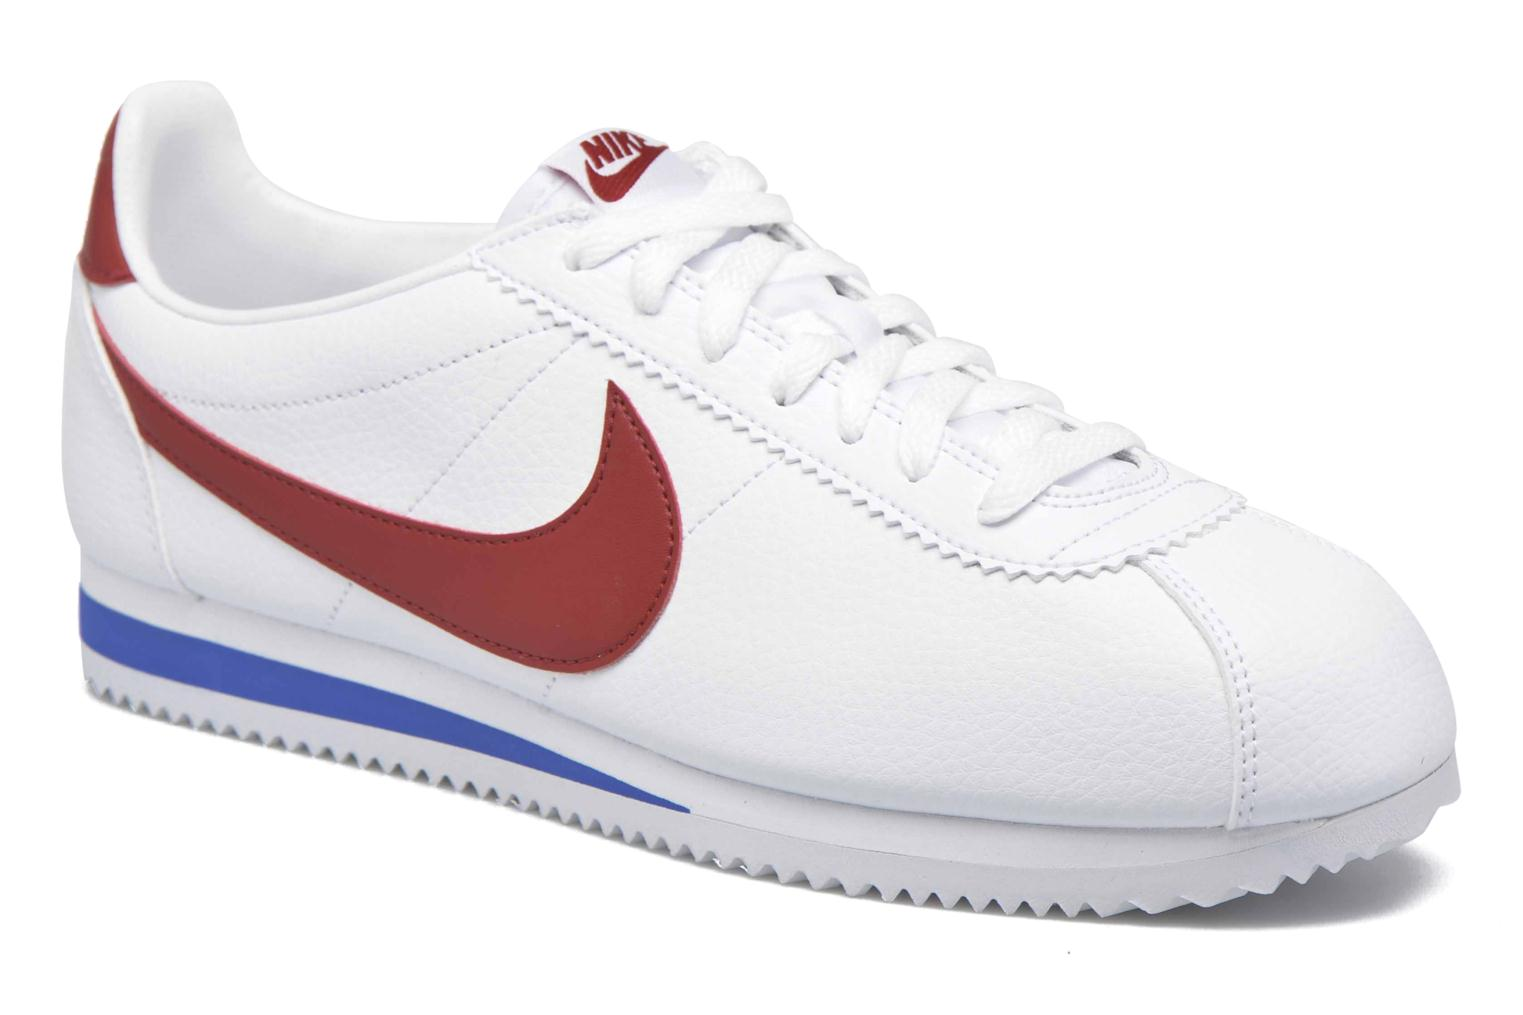 quality design d040f 3d5cf nike-cortez-heren-wit-749571-154-witte-sneakers-. 33 %. nike cortez wit